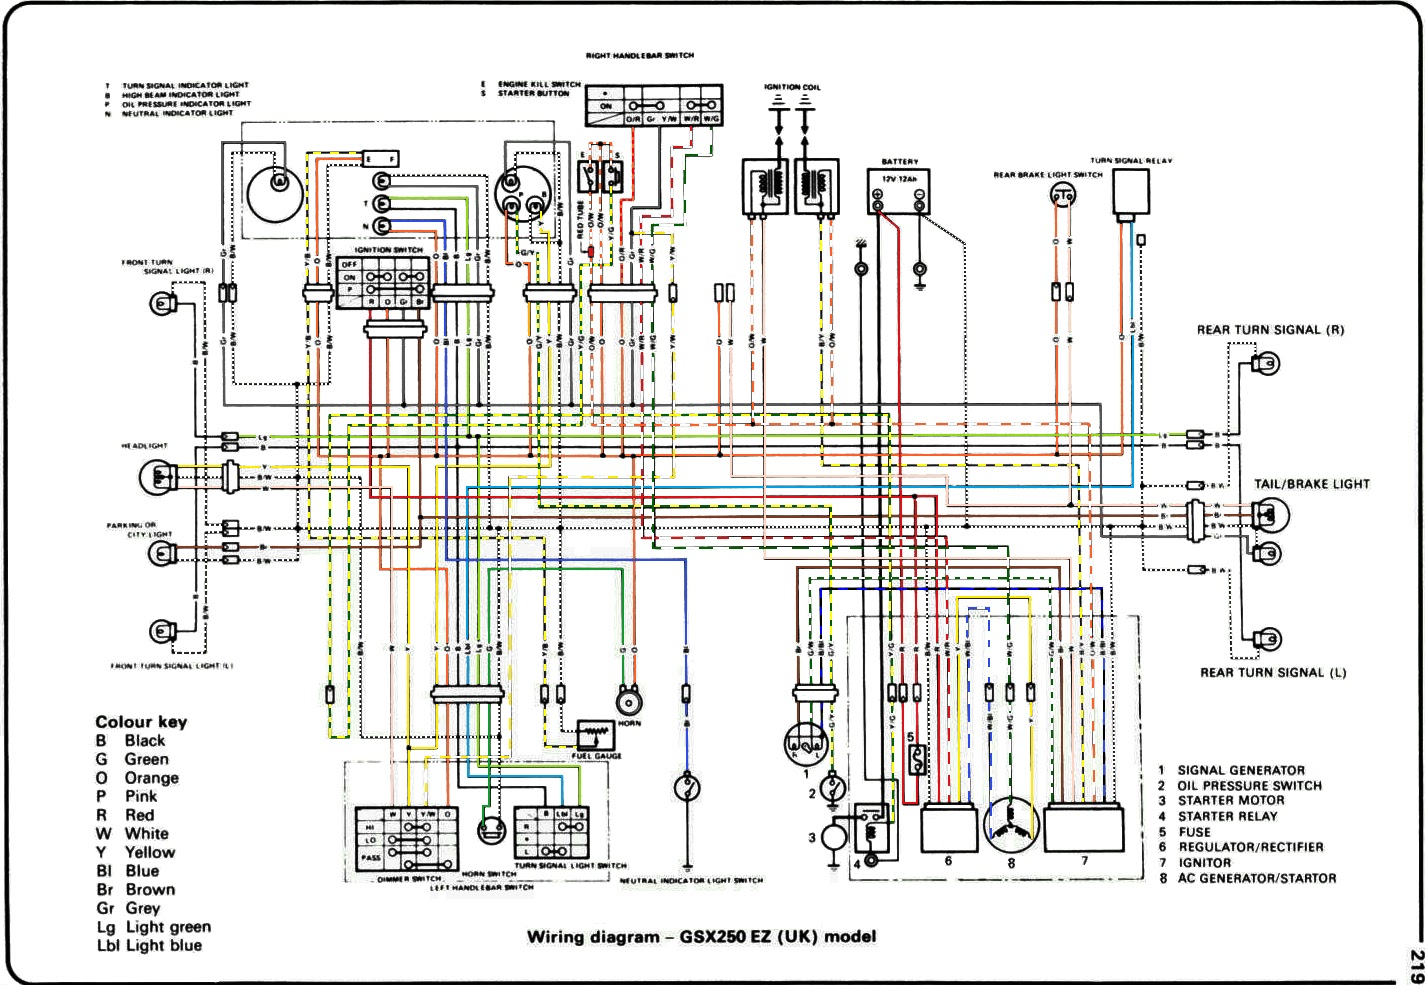 Suzuki 250 Wiring Diagram Guide And Troubleshooting Of Dr Diagrama Electrico De 2 Switches Explore Schematic 1982 Ts250